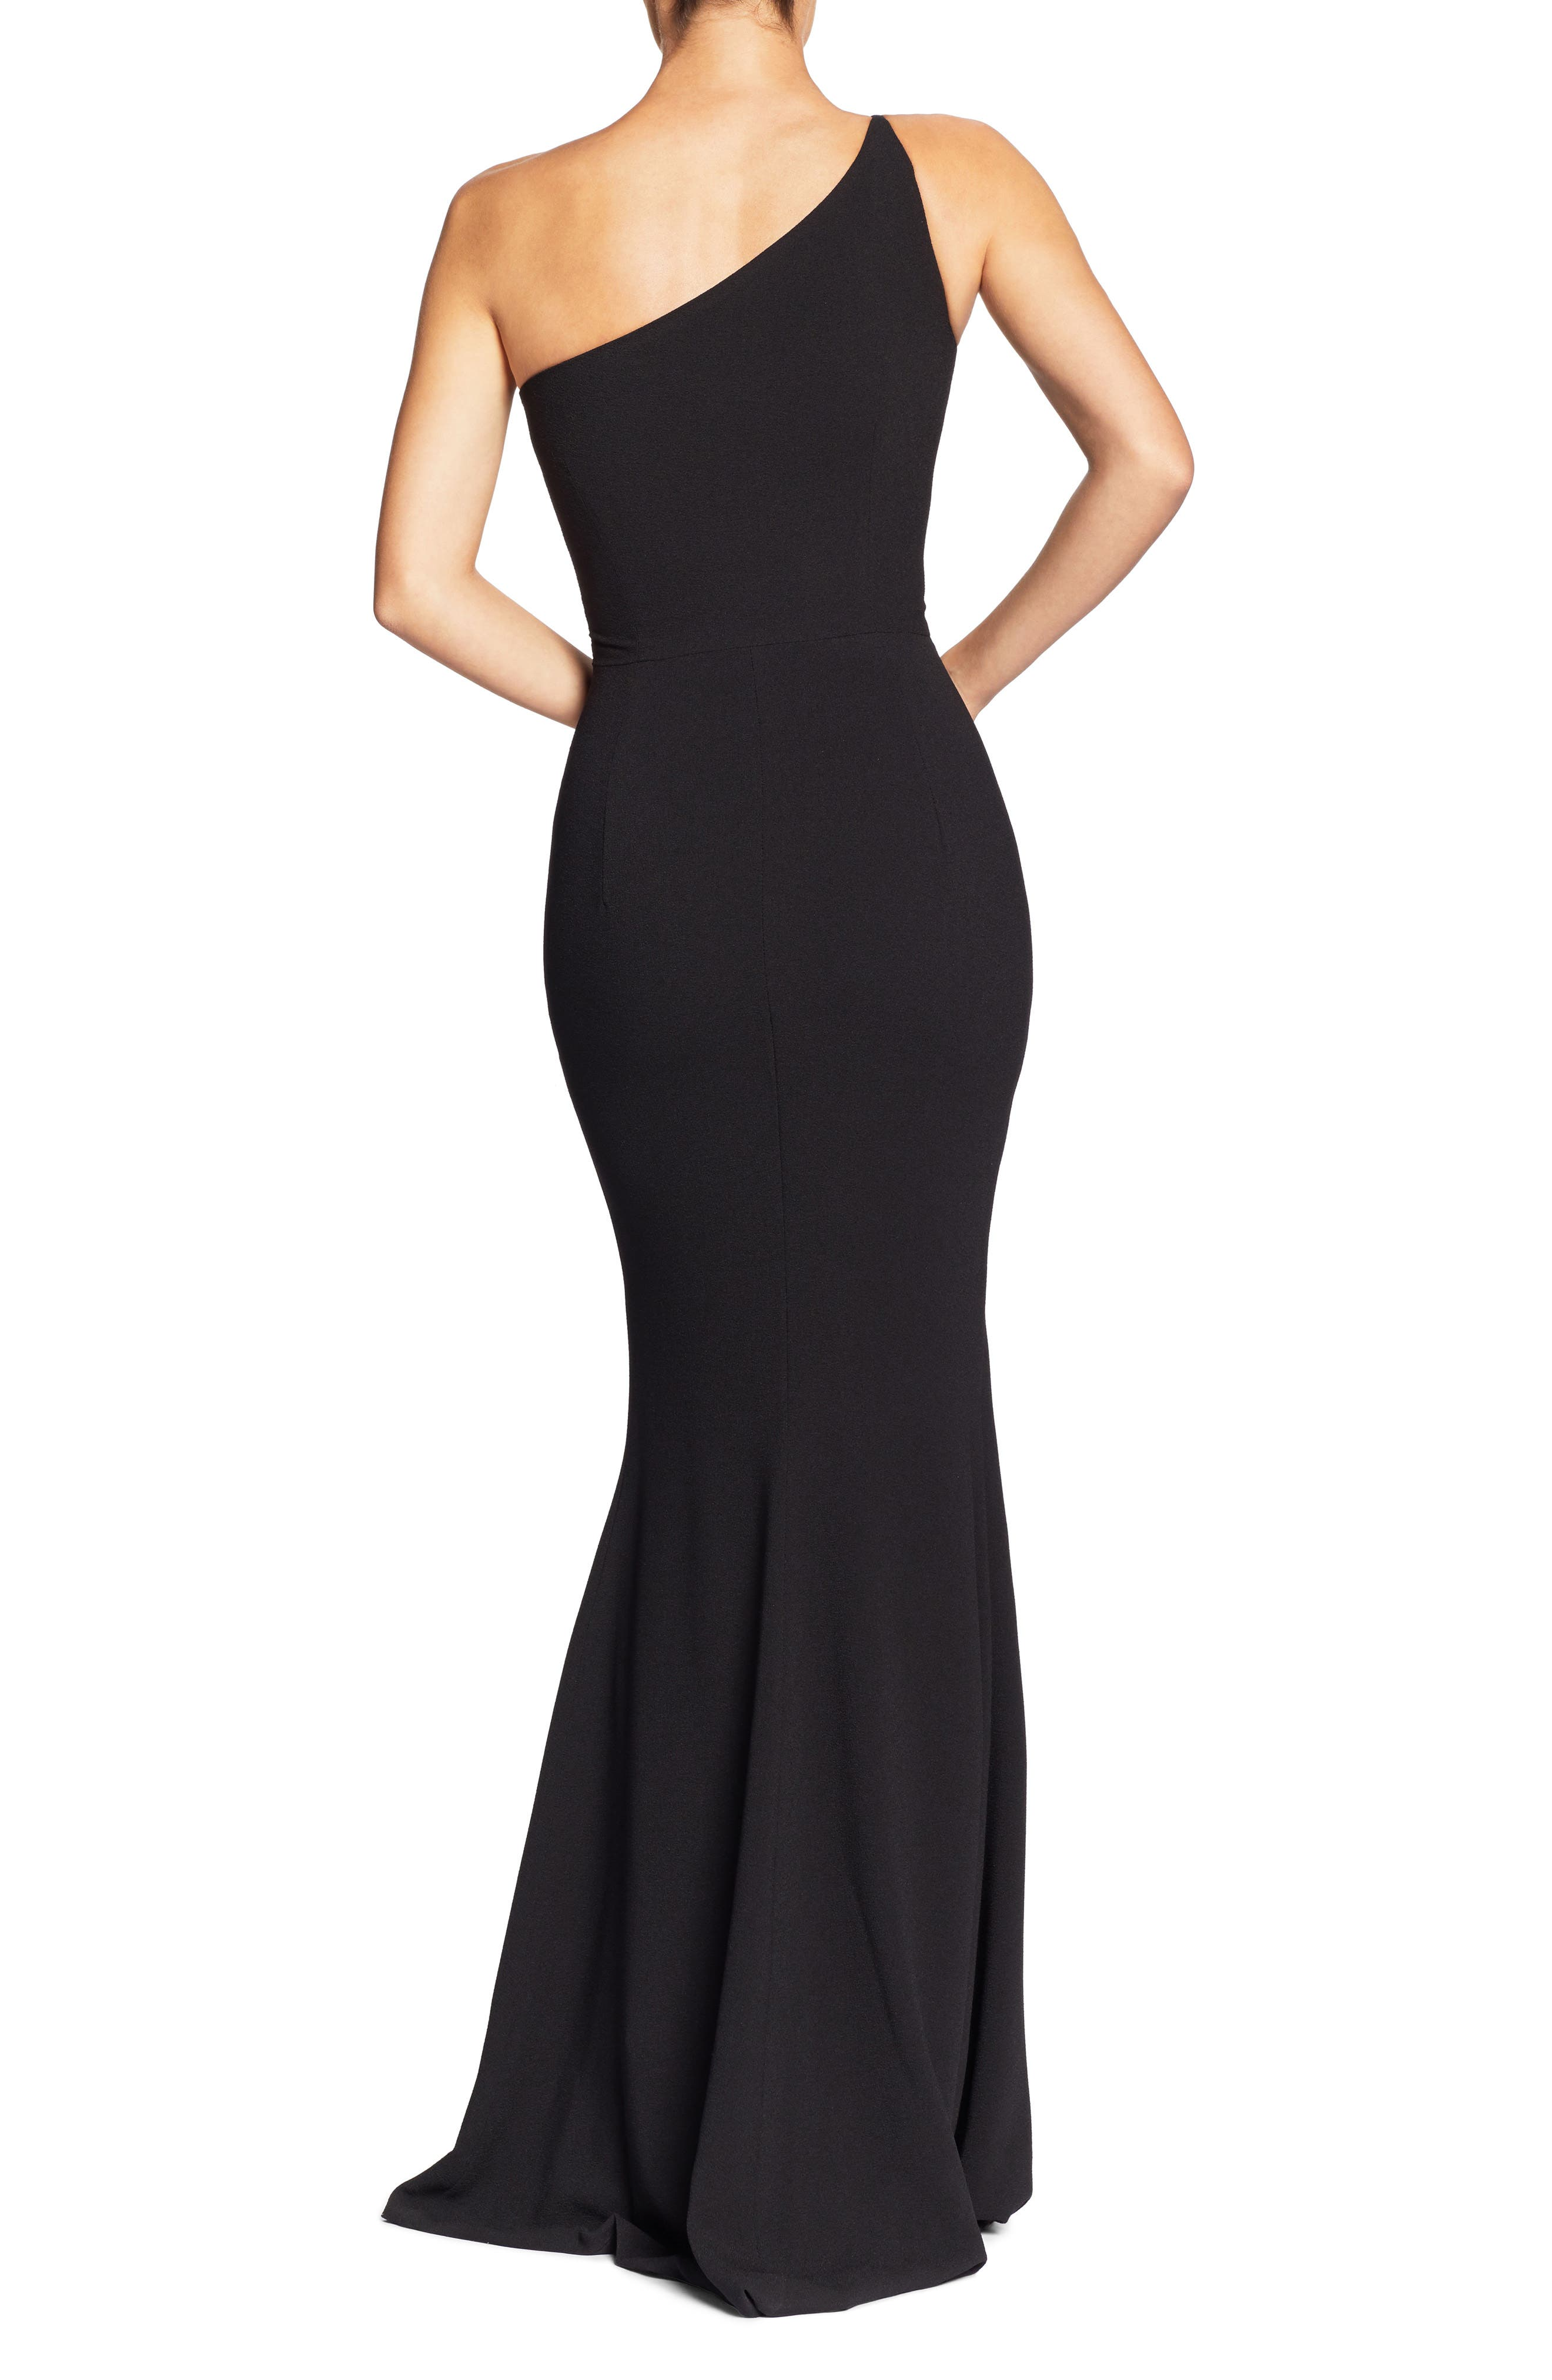 DRESS THE POPULATION,                             Amy One-Shoulder Crepe Gown,                             Alternate thumbnail 2, color,                             001